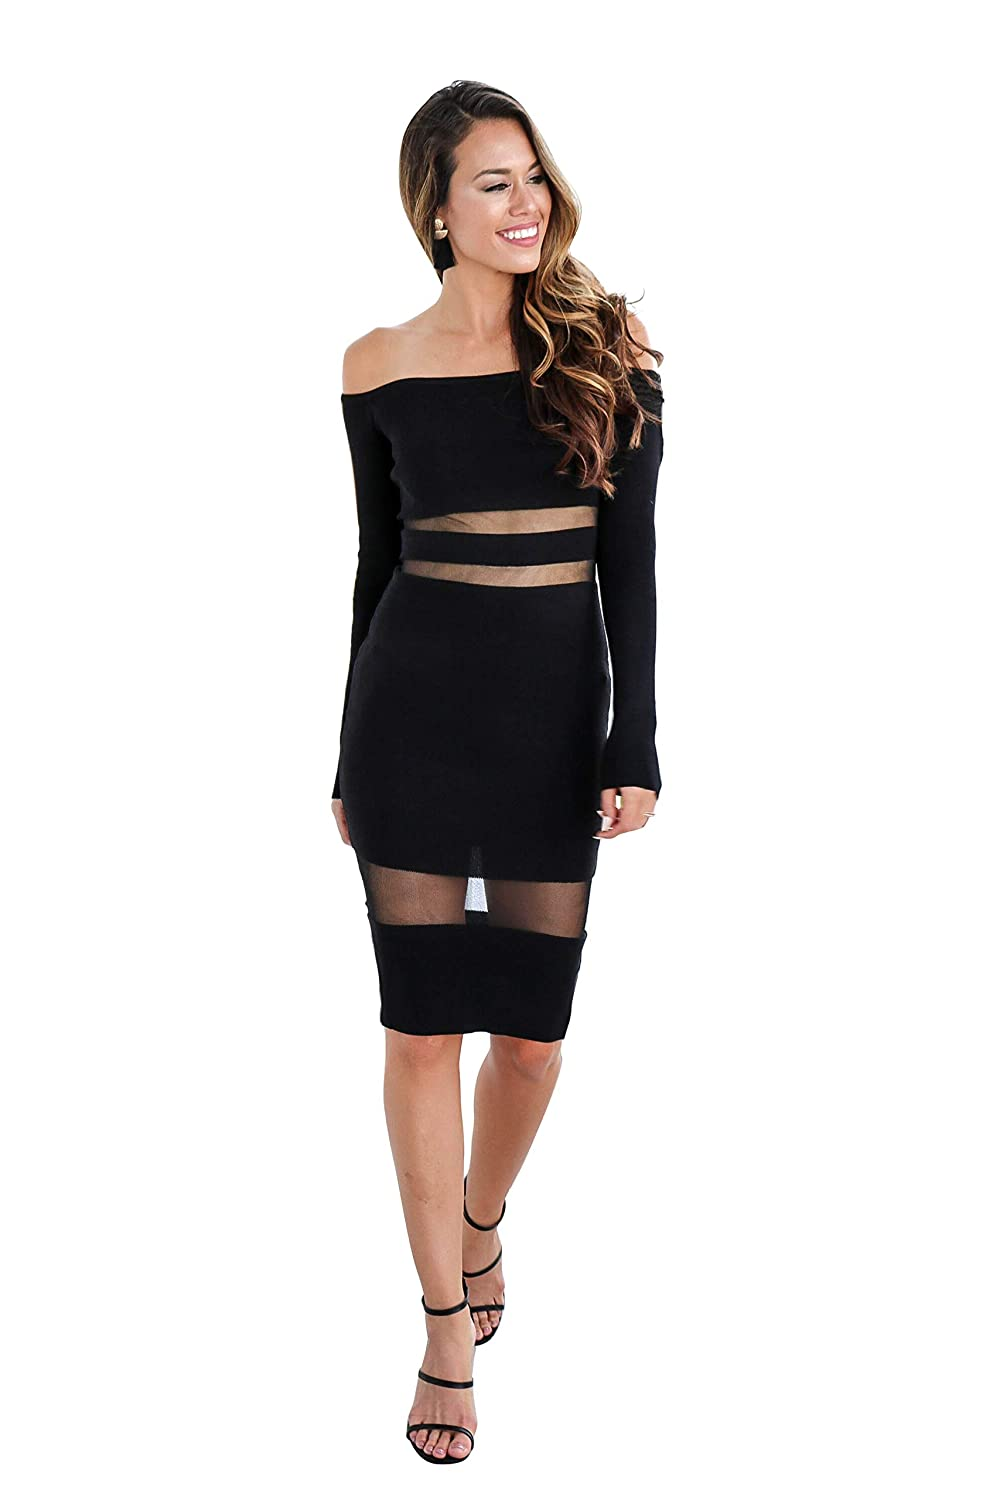 935eb5e1e4d7 Womens Long Sleeve Off The Shoulder Night Club Work Dress at Amazon Women s  Clothing store